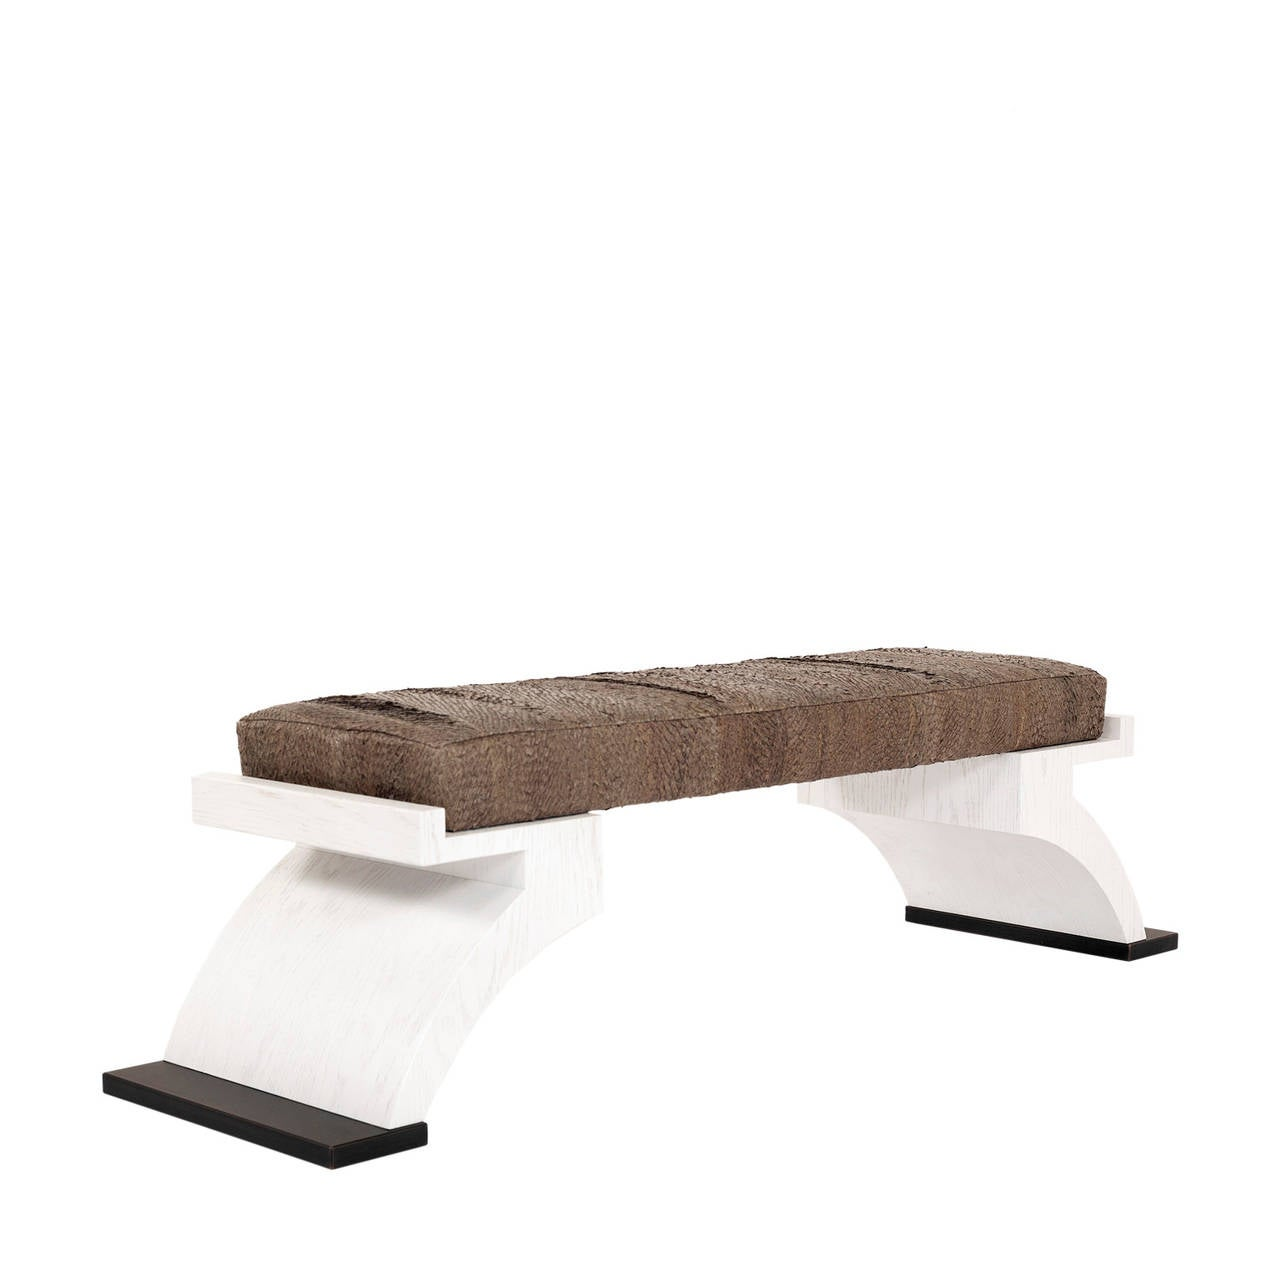 The Teres is a sophisticated white oak bench with elegant lines and beautiful mix of materials, including bronze Patina feet, white oak curved legs and upholstered in a beautiful Brazilian fish skin.   This item is available immediately in the